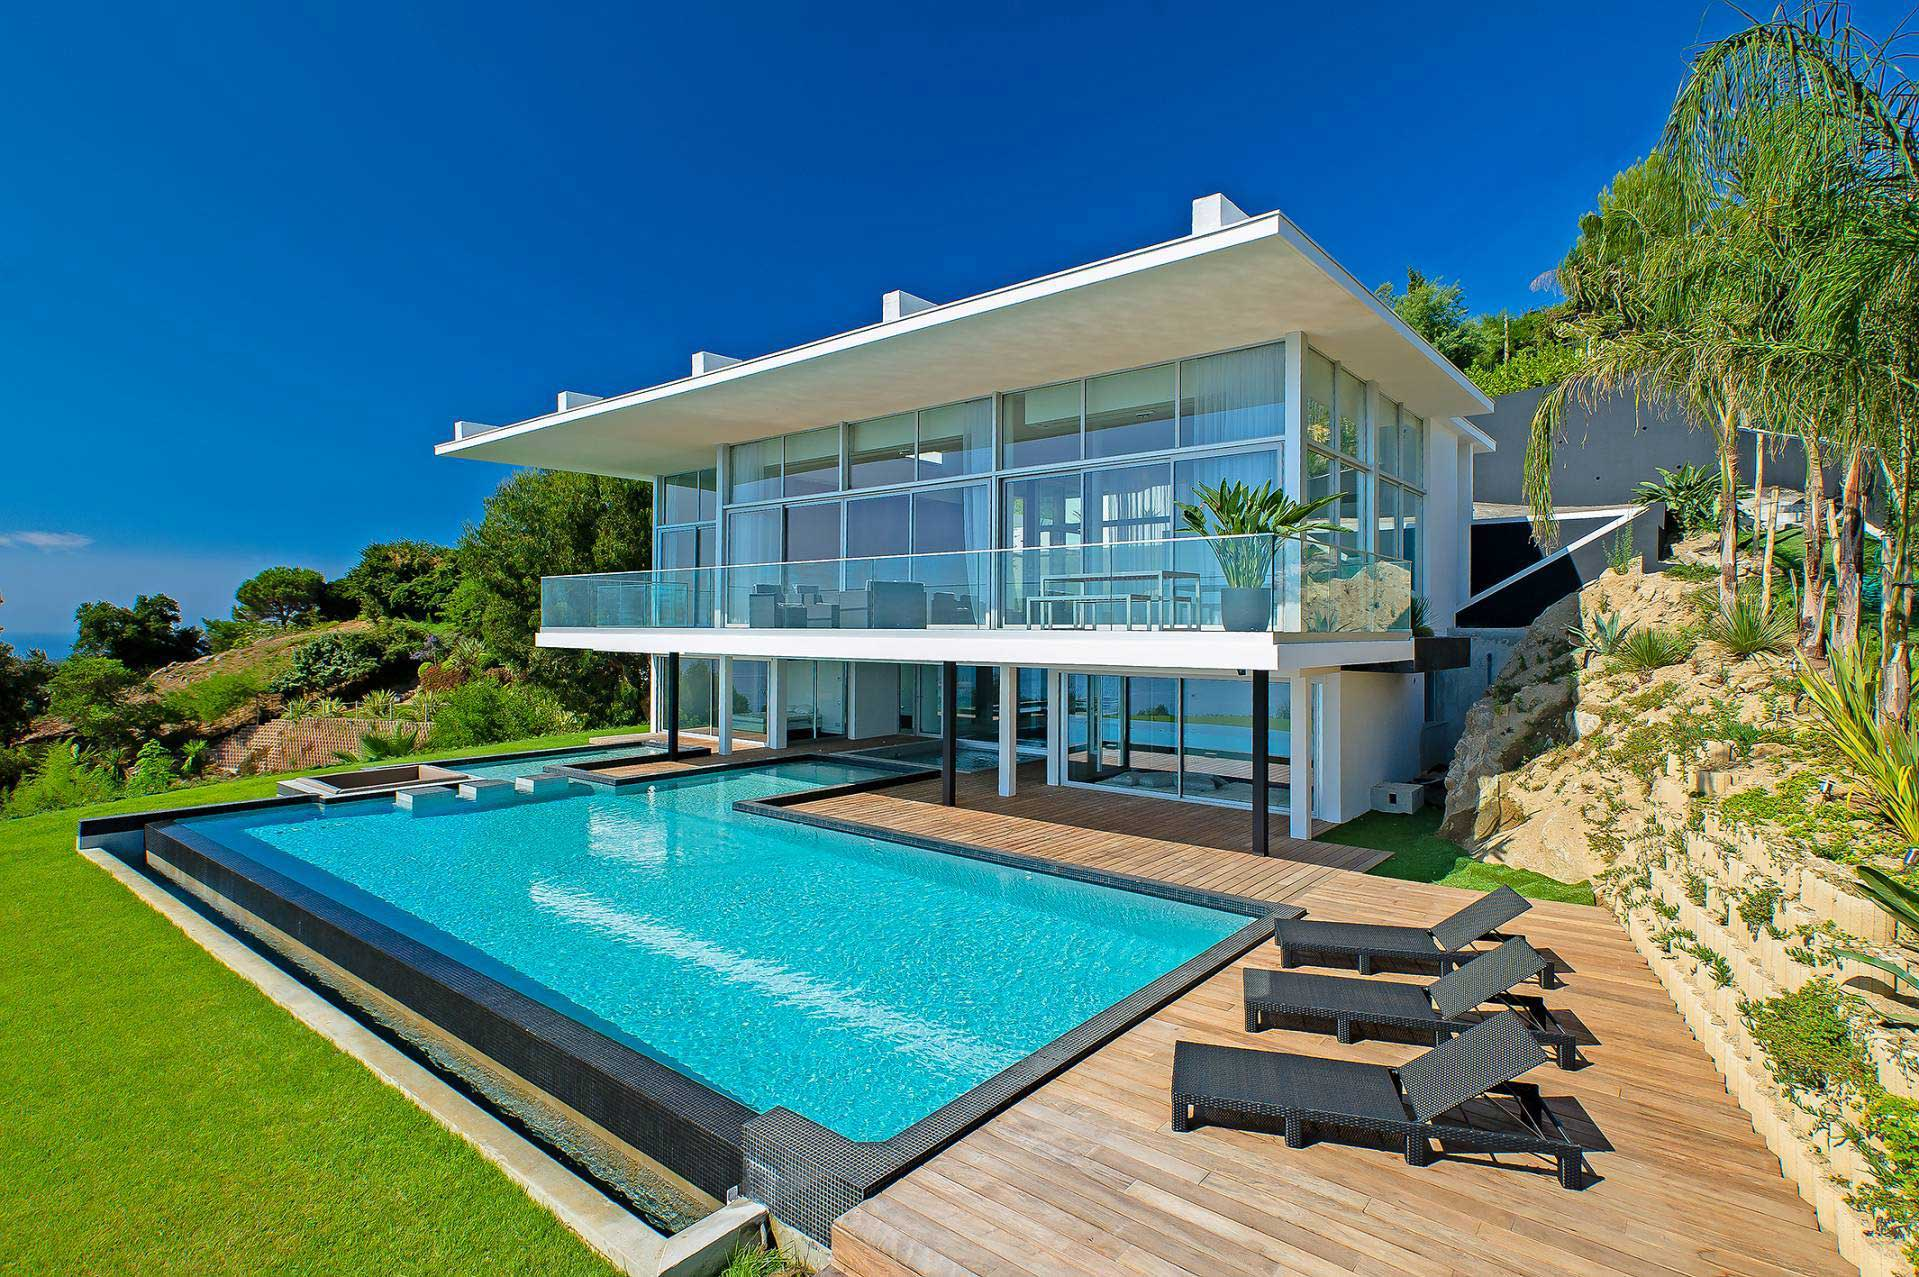 Villa contemporaine avec piscine saint tropez for Piscine de saint avold